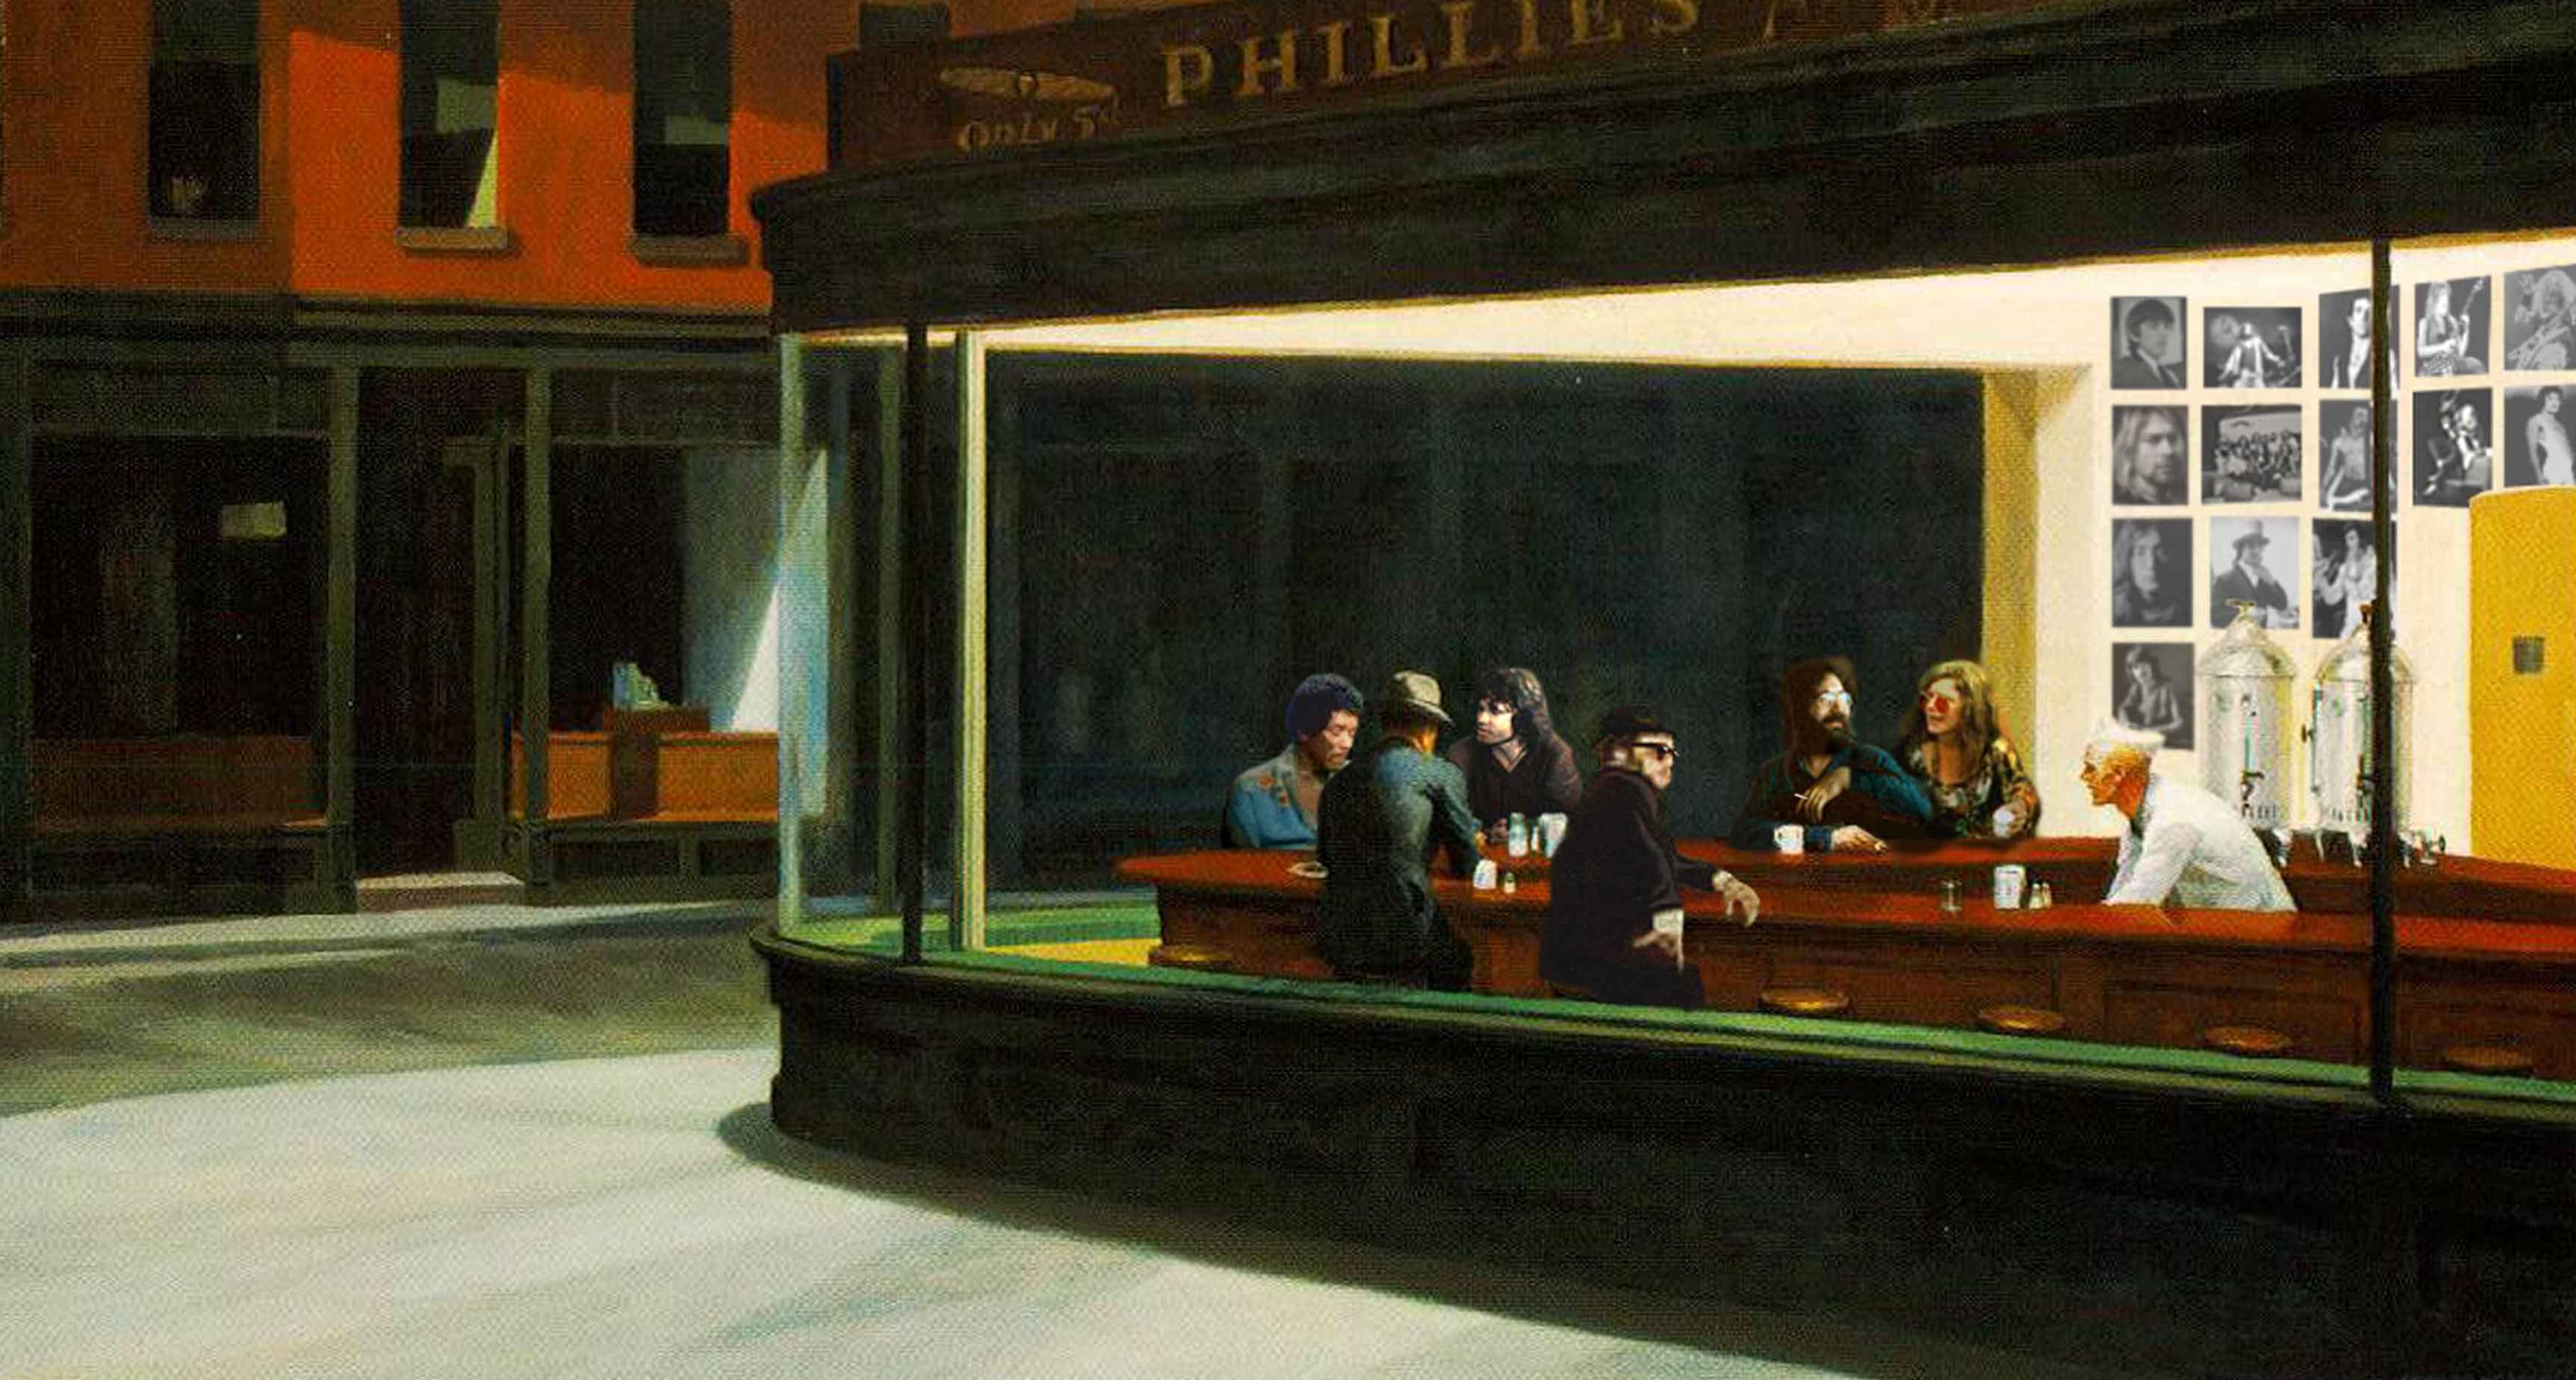 http://lounge.obviousmag.org/isso_compensa/2015/09/25/Nighthawks%20-%20rock.jpg